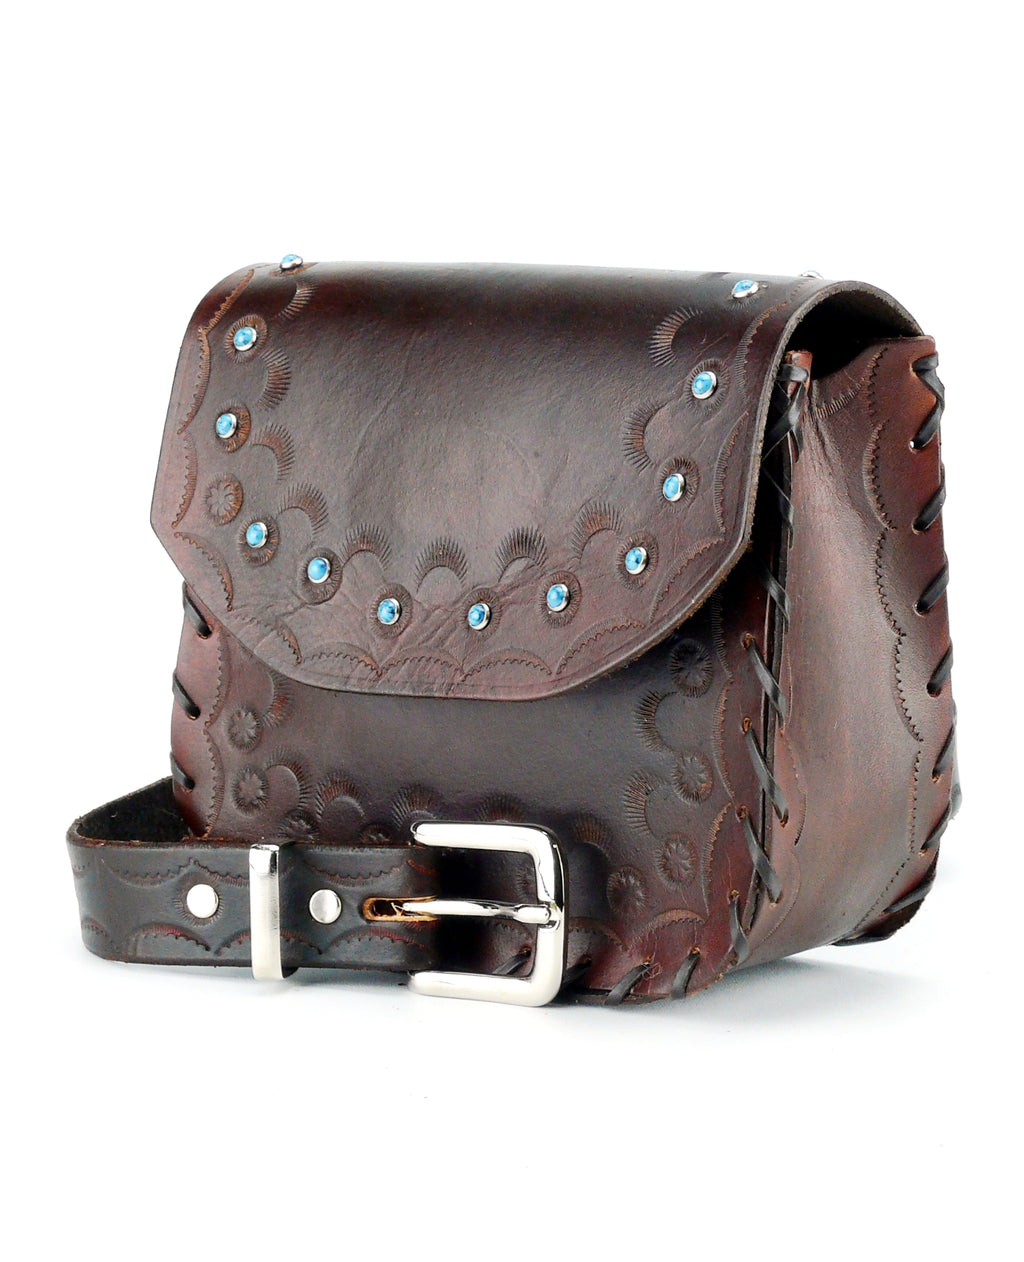 Tiggy Woodstock - Belt Bag Rustic Walnut